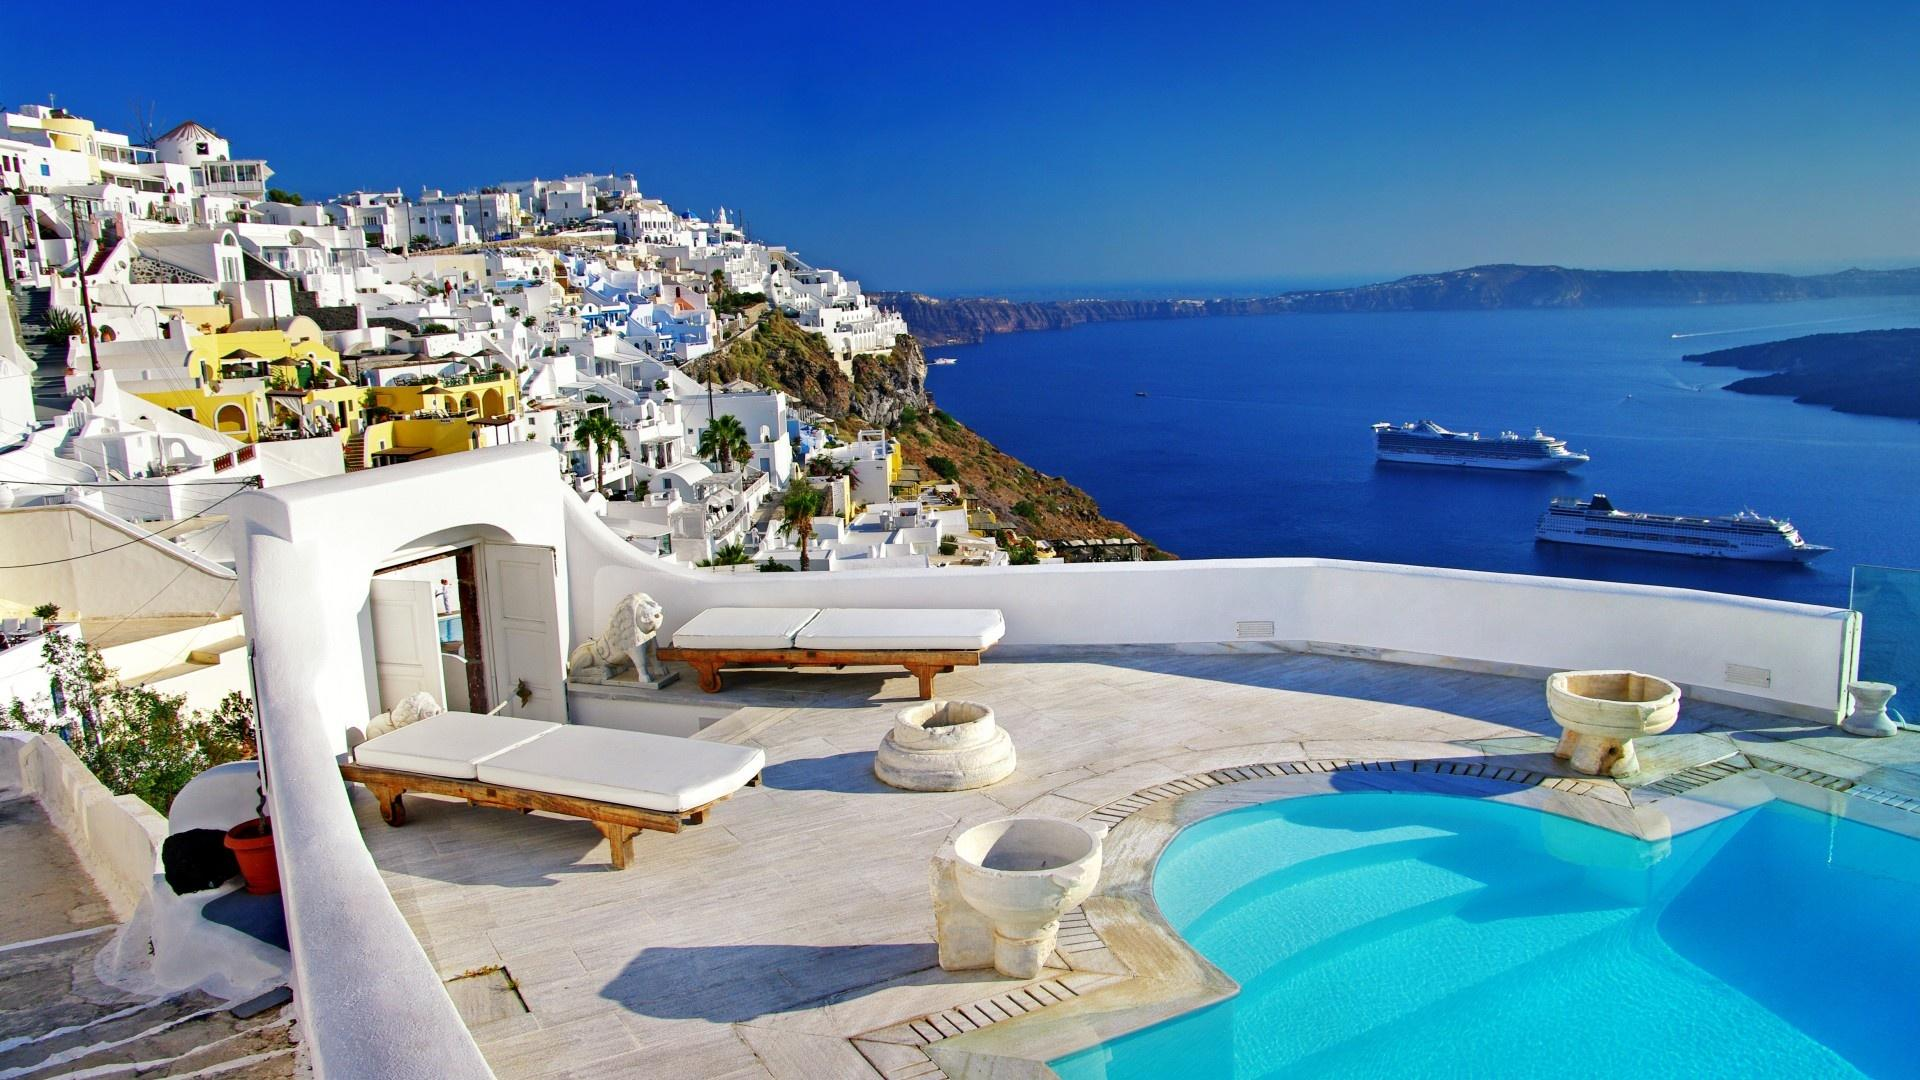 Santorini Luxury Hotels HD Wallpaper Background Images 1920x1080